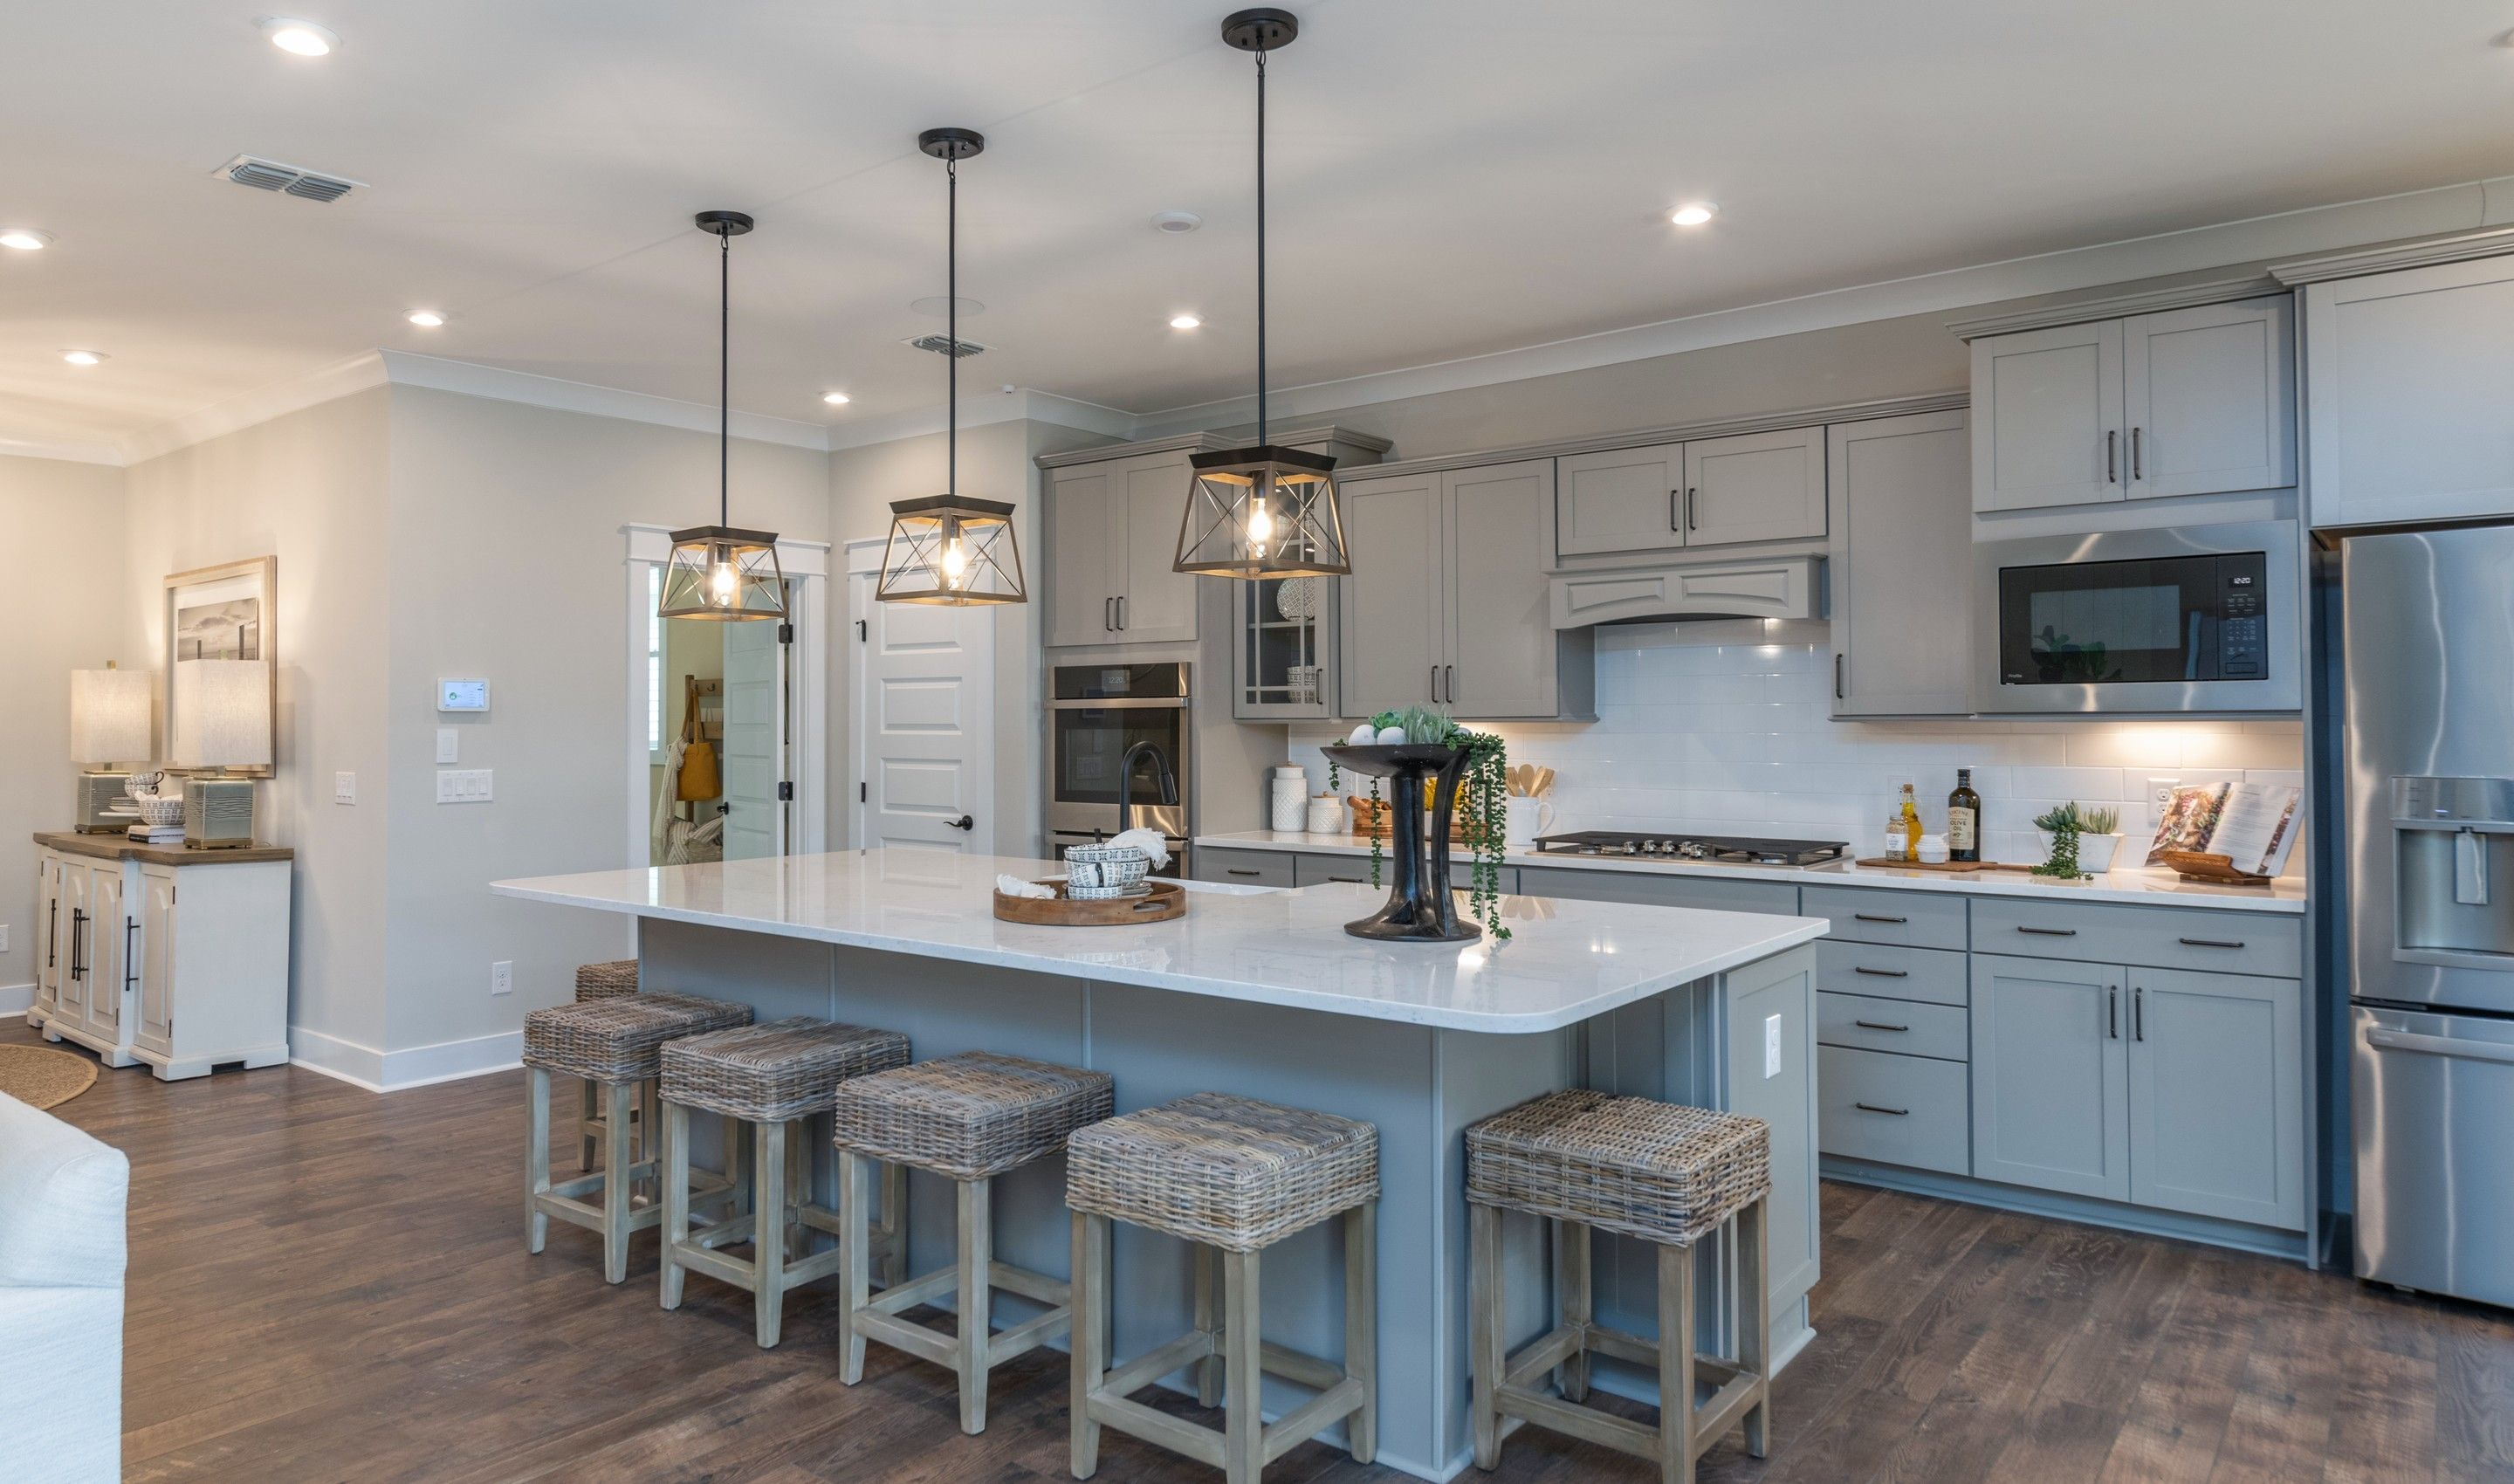 Kitchen featured in the Ibiza Loft By K. Hovnanian's® Four Seasons in Hilton Head, SC